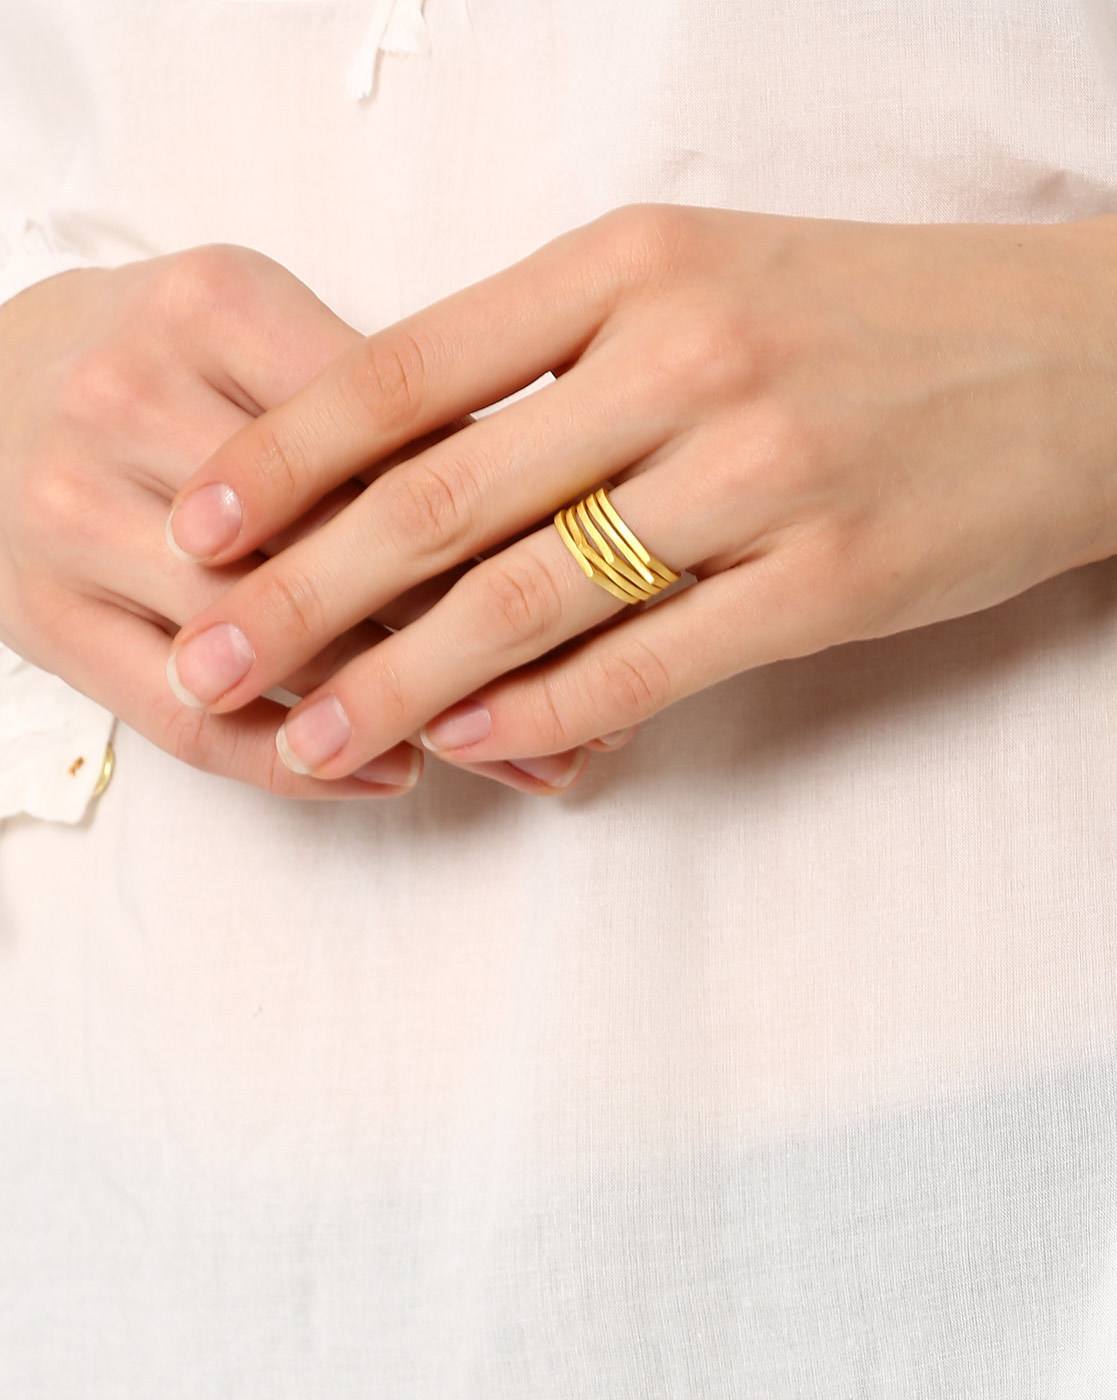 2 buying wedding jewellery - set of 5 gold-plated stackable rings